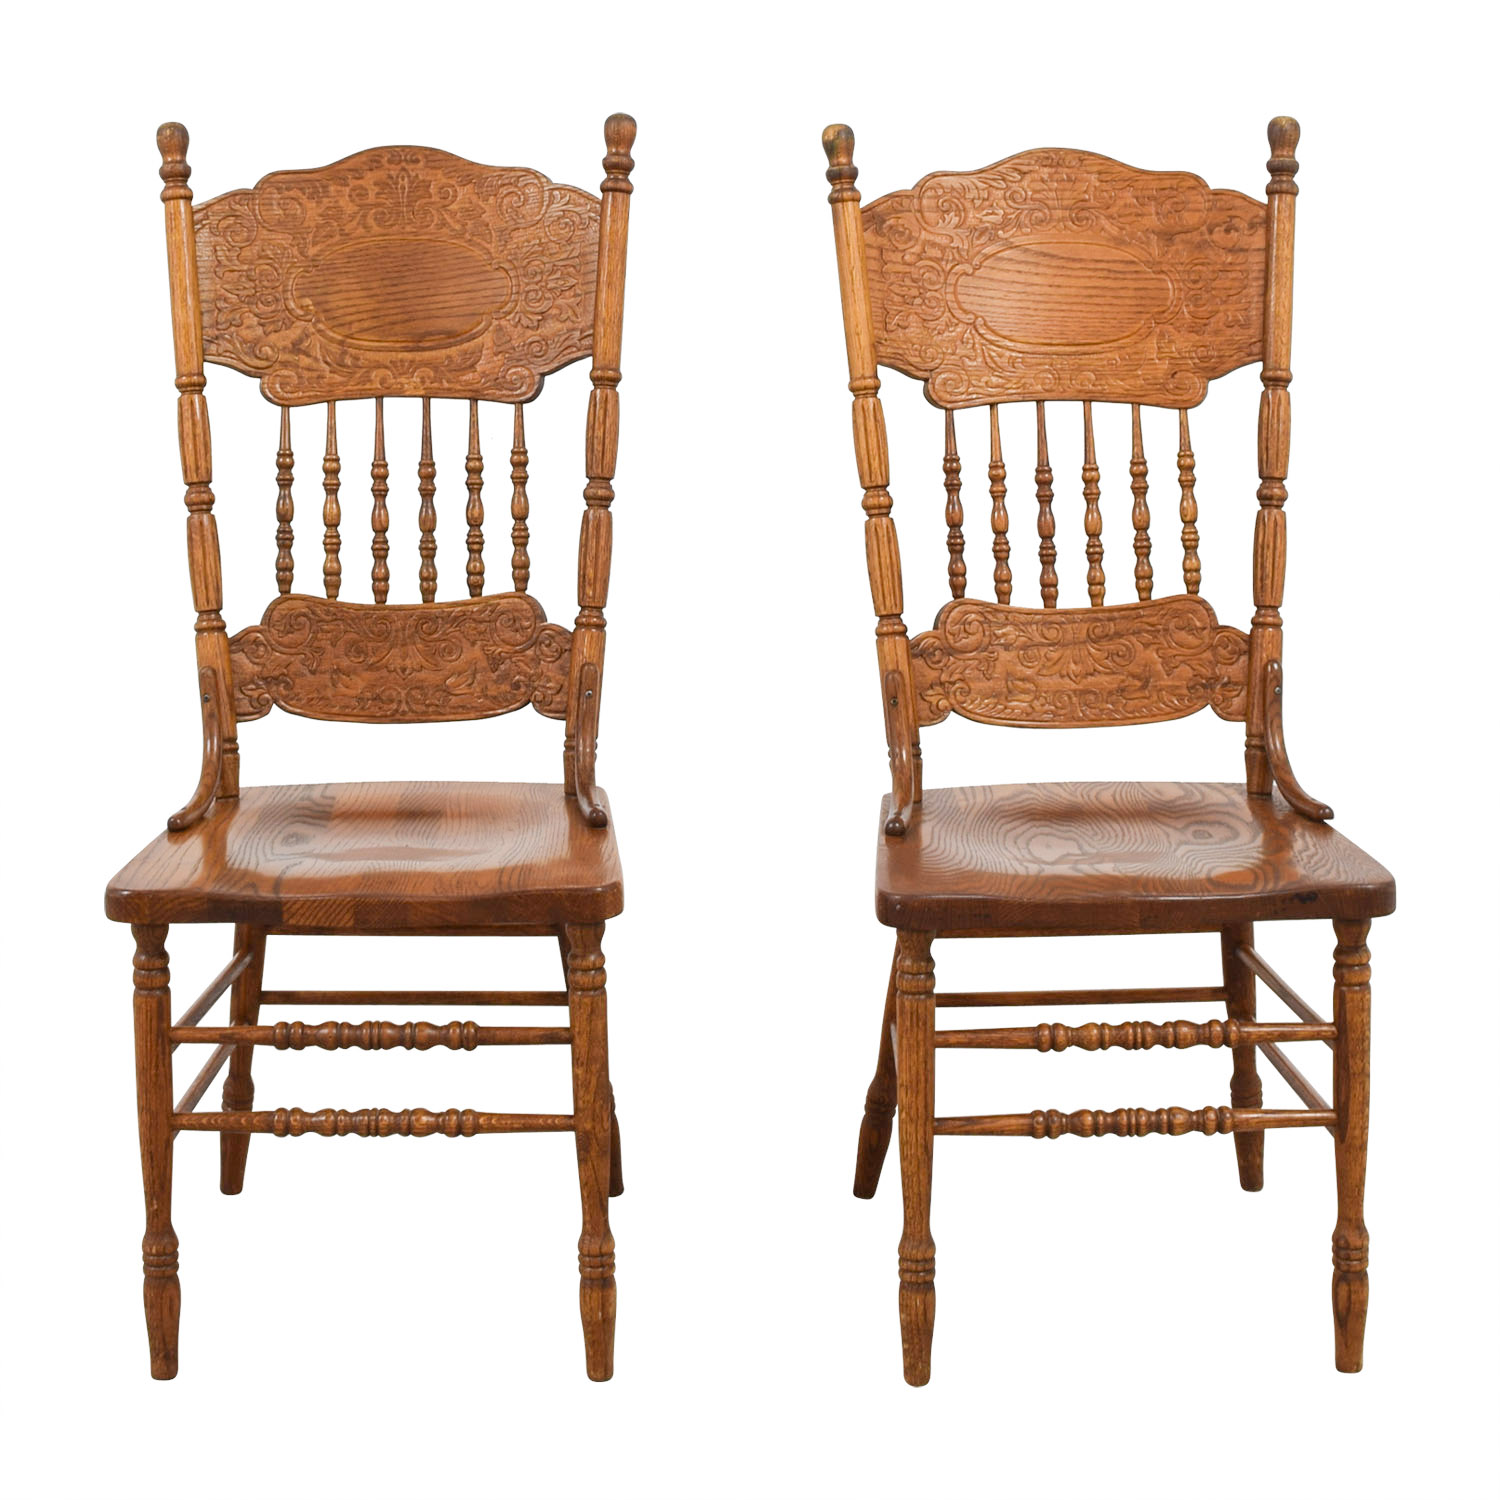 buy  Antique Floral Carved Wood Chairs online